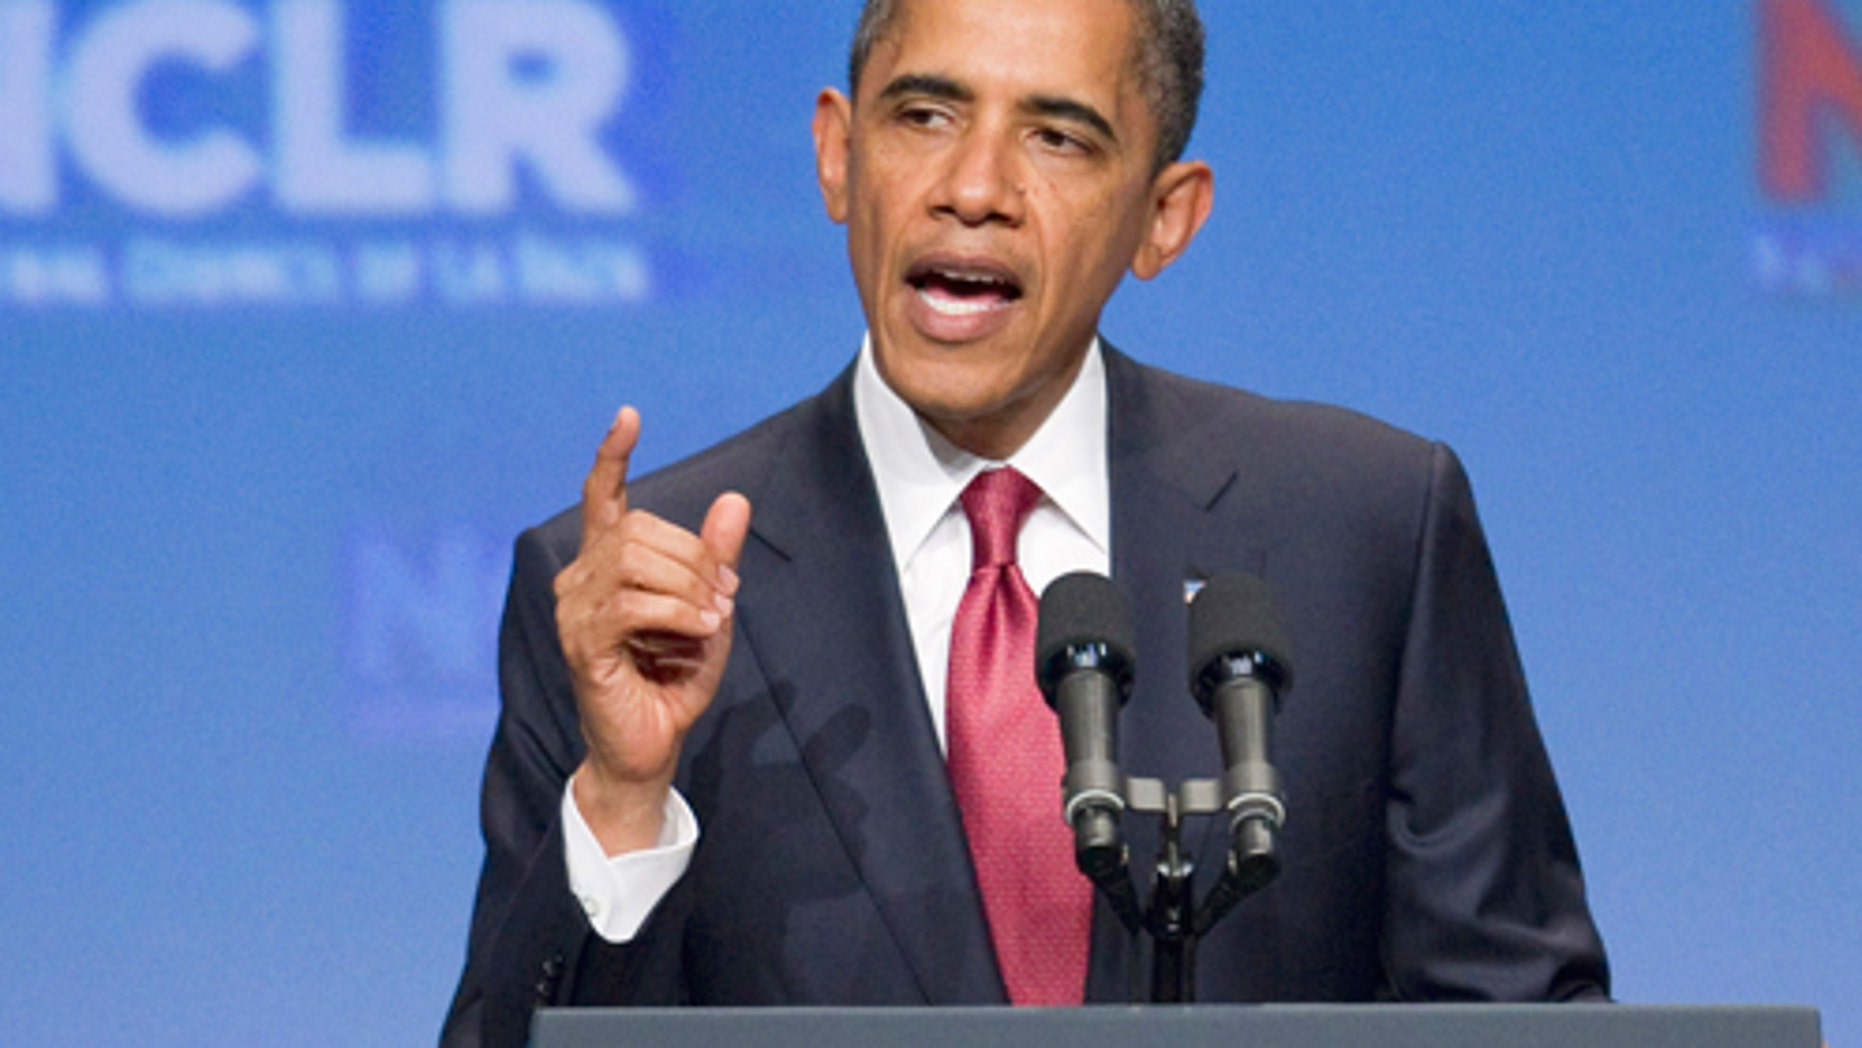 President Barack Obama gestures while addressing the annual National Council of La Raza conference in Washington, Monday, July 25, 2011.  (AP Photo/Evan Vucci)